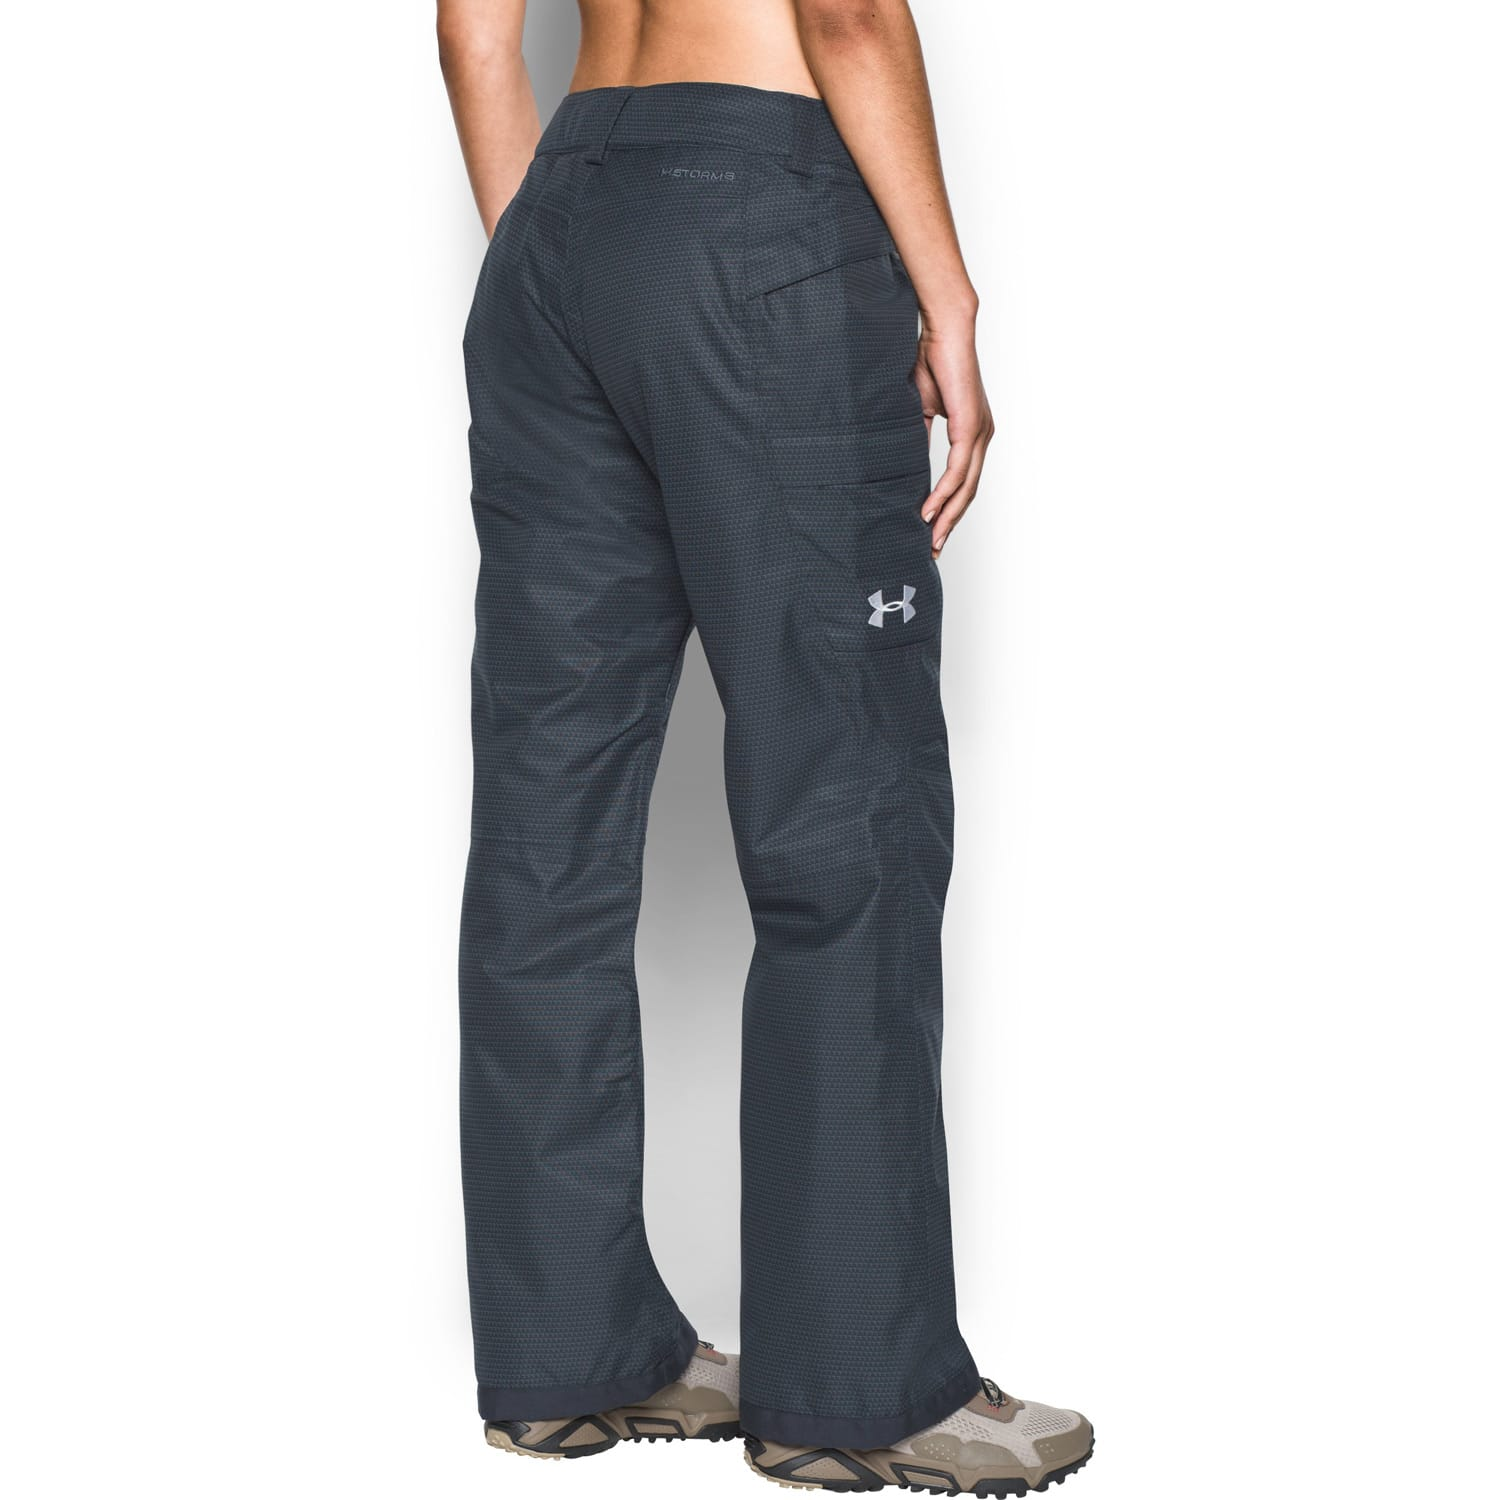 3e03c68c5 Cheap under armor cold gear pants Buy Online >OFF48% Discounted